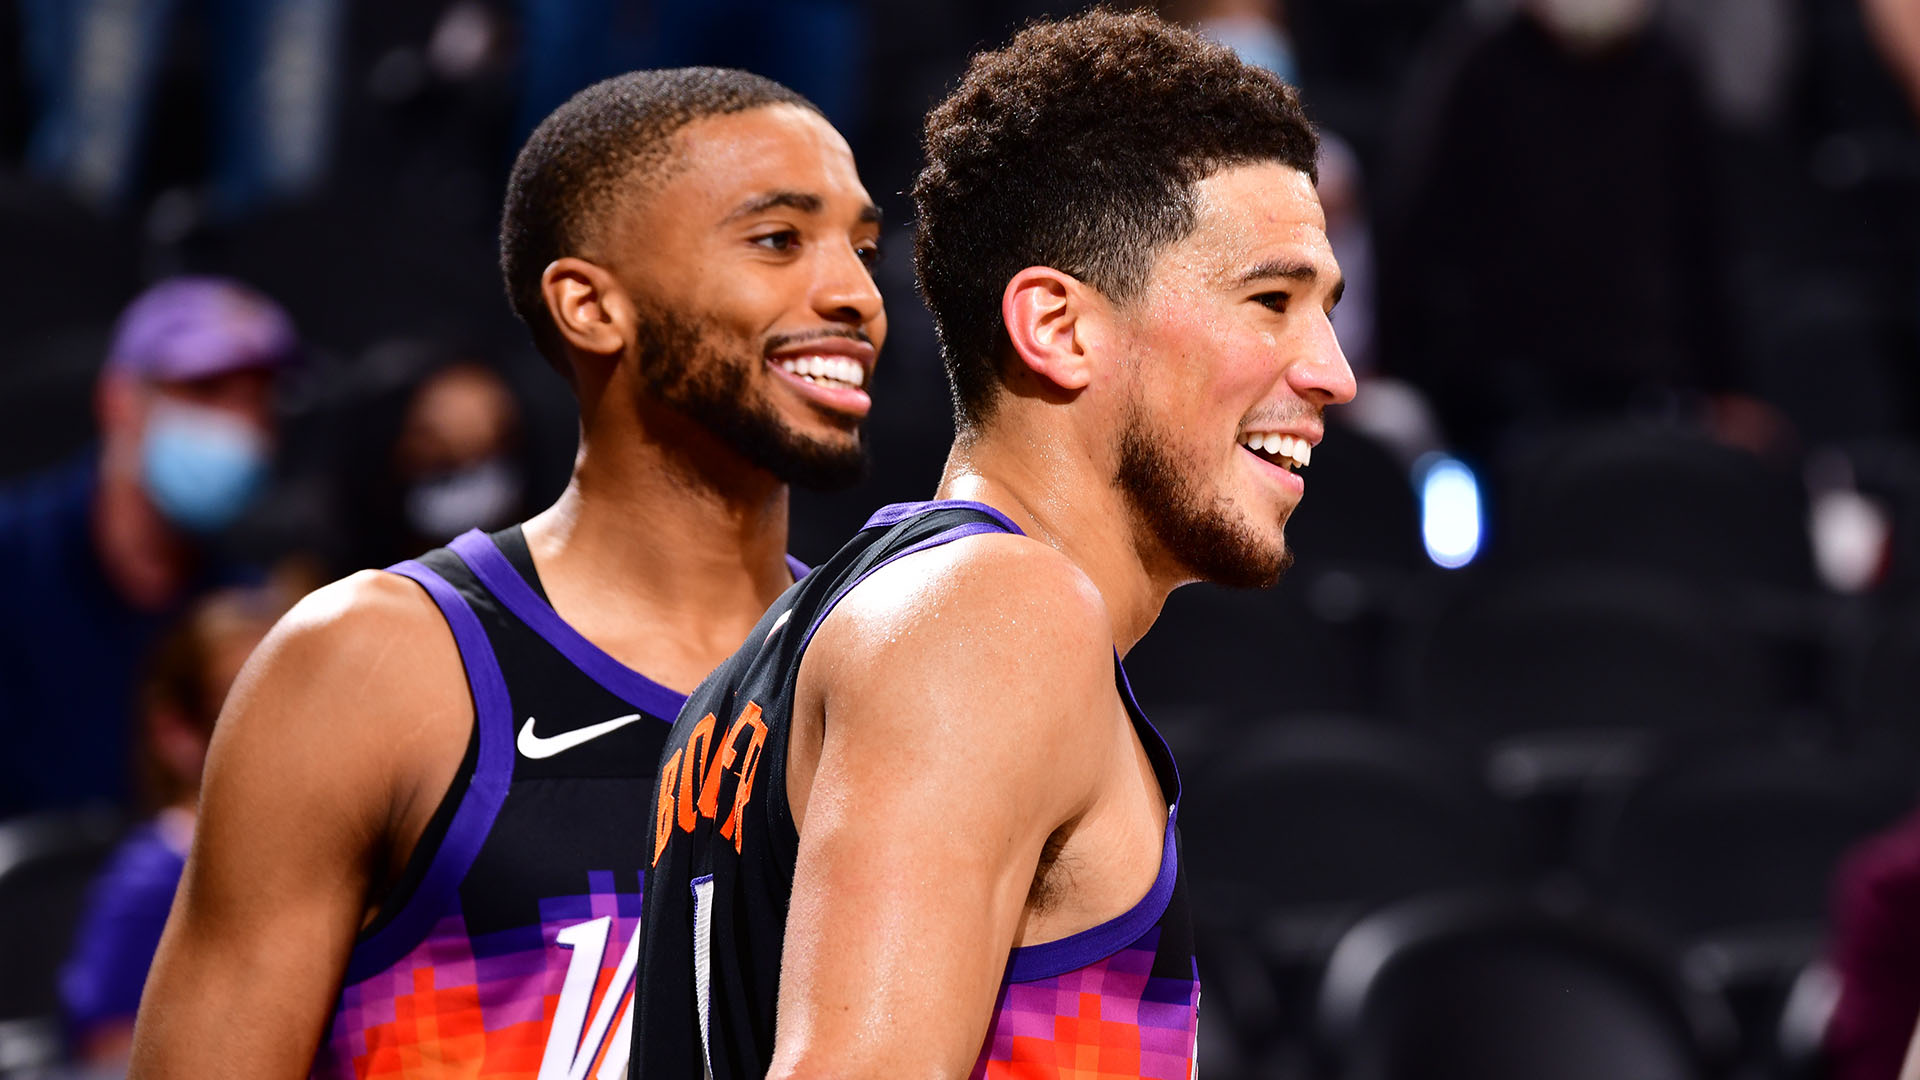 Power Rankings, Week 20: Suns, Sixers on rise in season's final 2 weeks